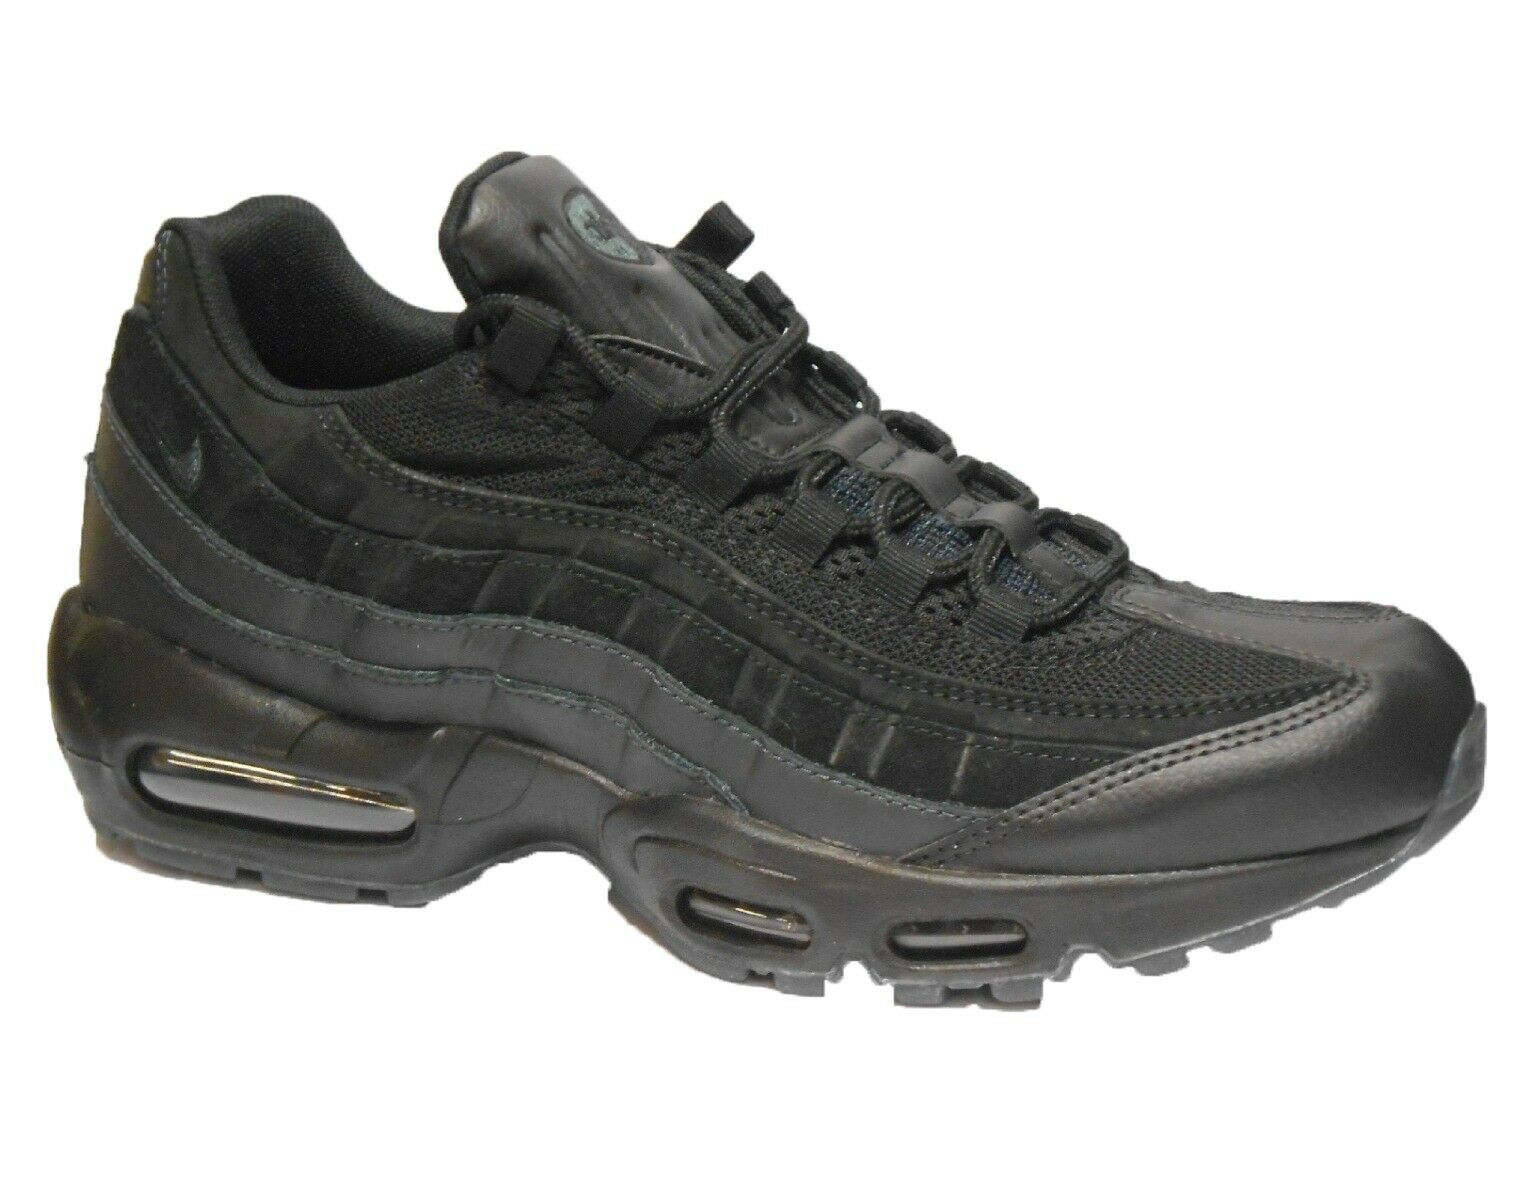 Nike Air Max 95 Essential Mens Running Trainer shoes Size 8 9 10 Black